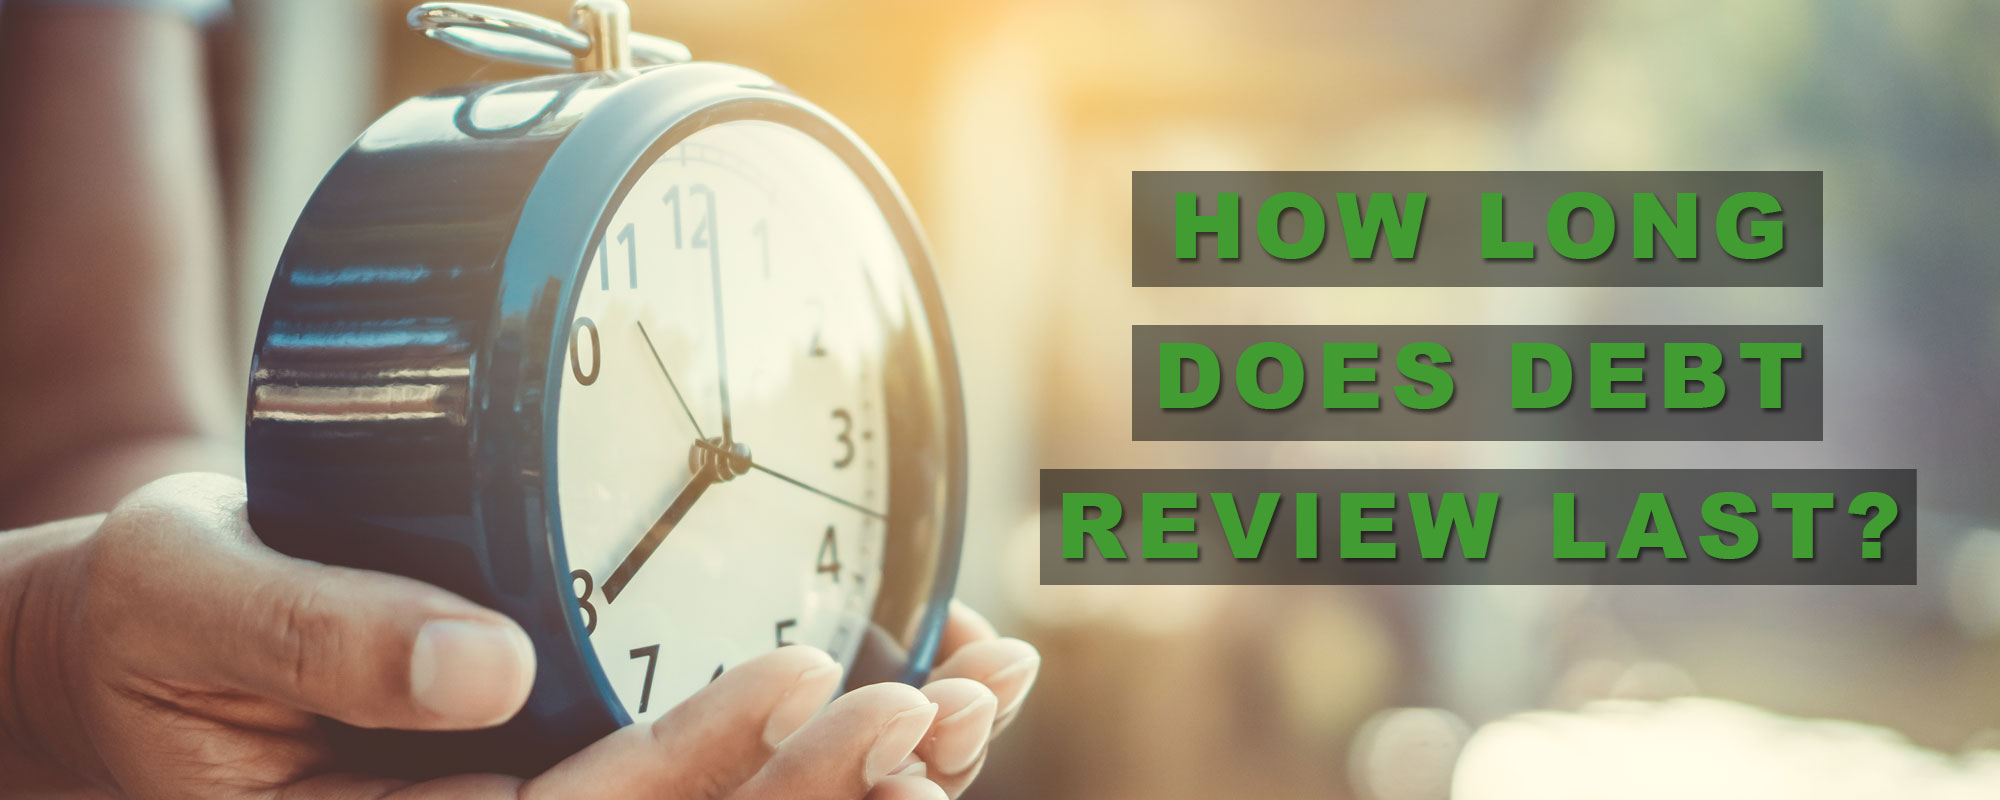 How Long Does Debt Review Last?